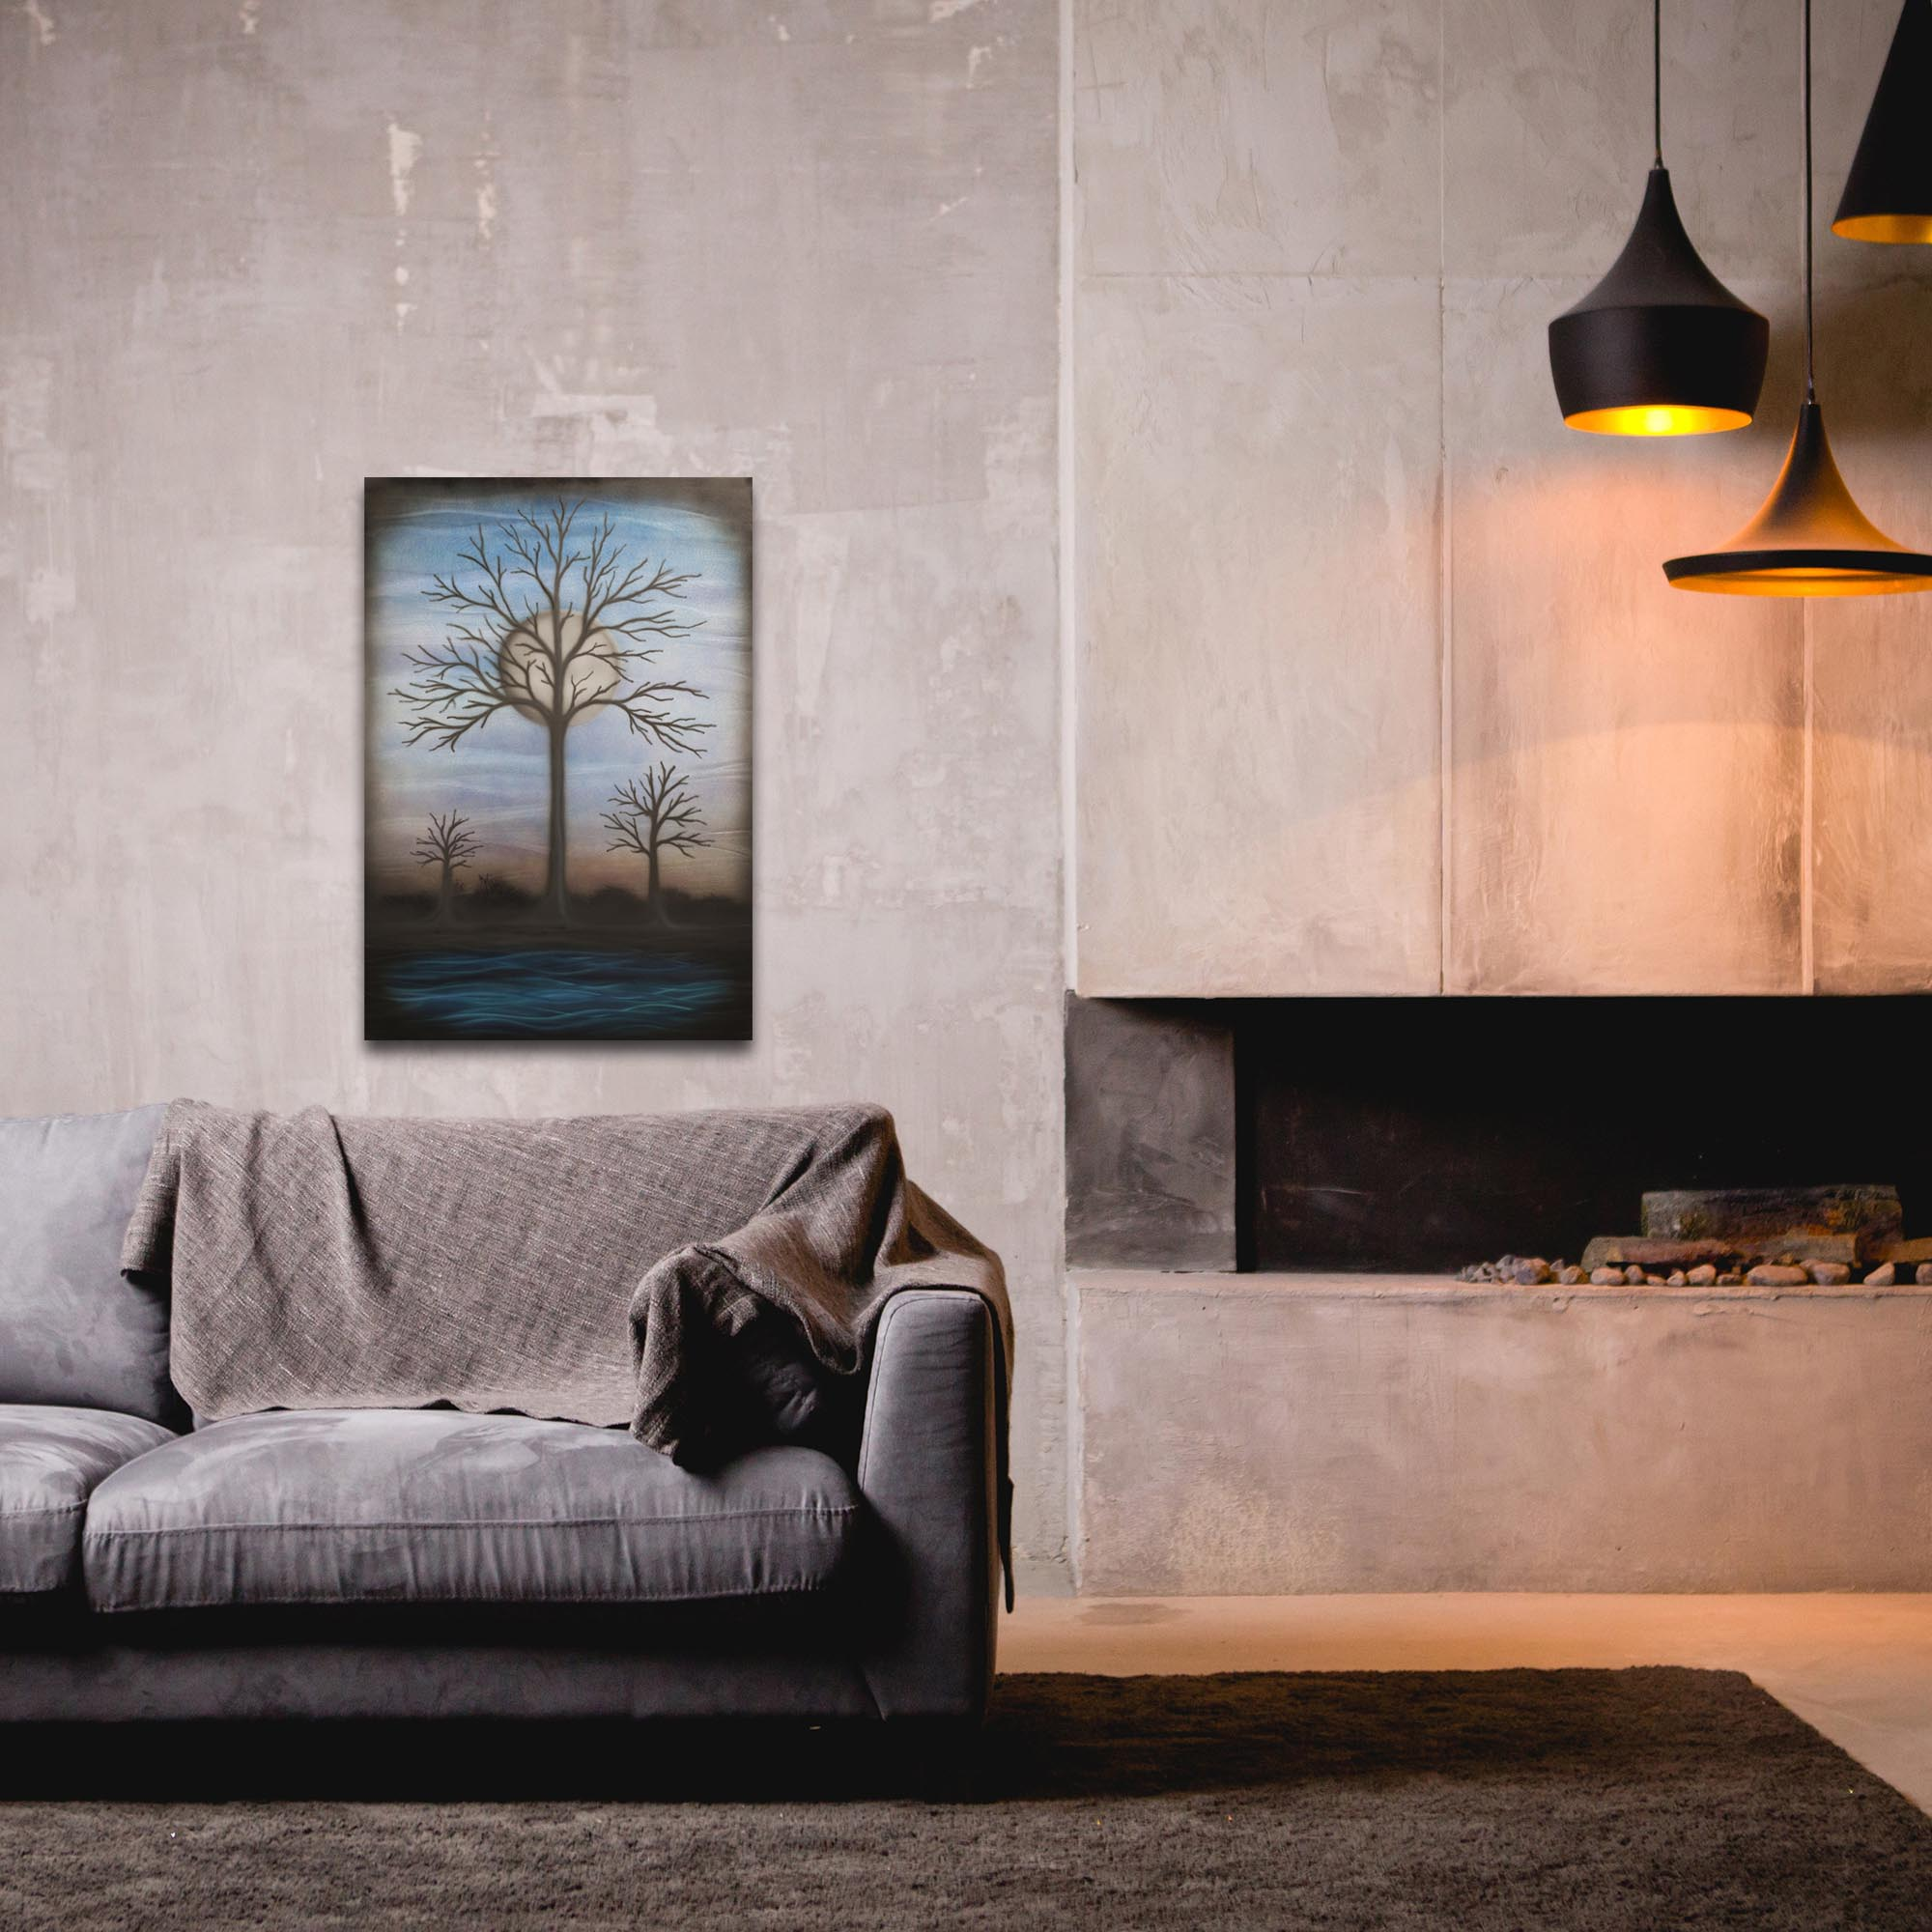 Contemporary Wall Art 'Full Moon' - Bare Trees Decor on Metal or Plexiglass - Lifestyle View